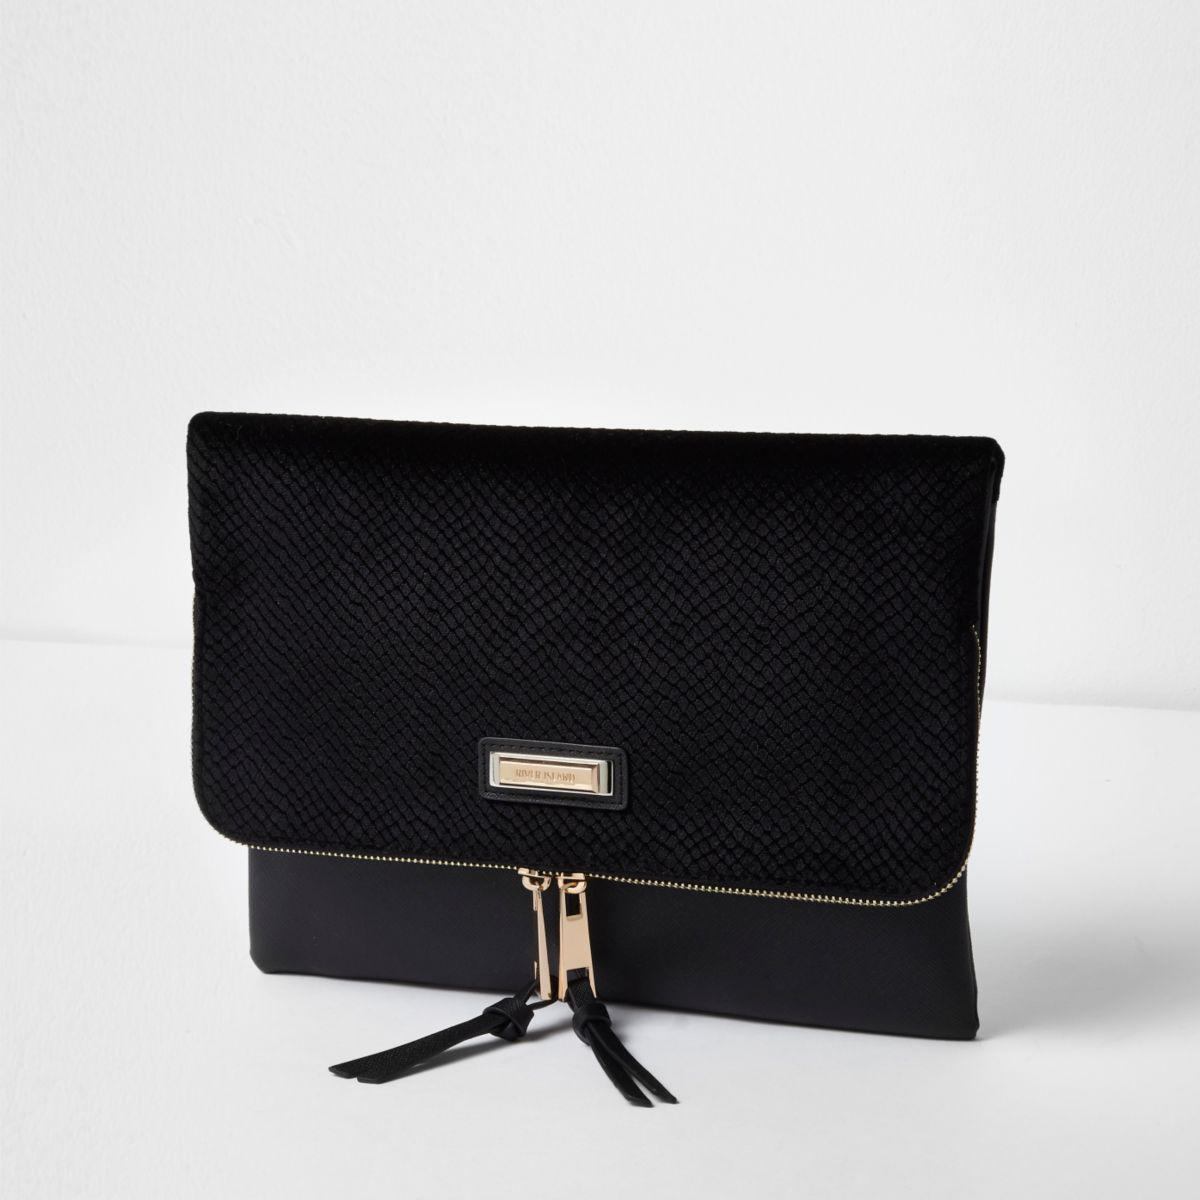 0eedbb346a3d Lyst - River Island Black Velvet Zip Around Envelope Clutch Bag in Black